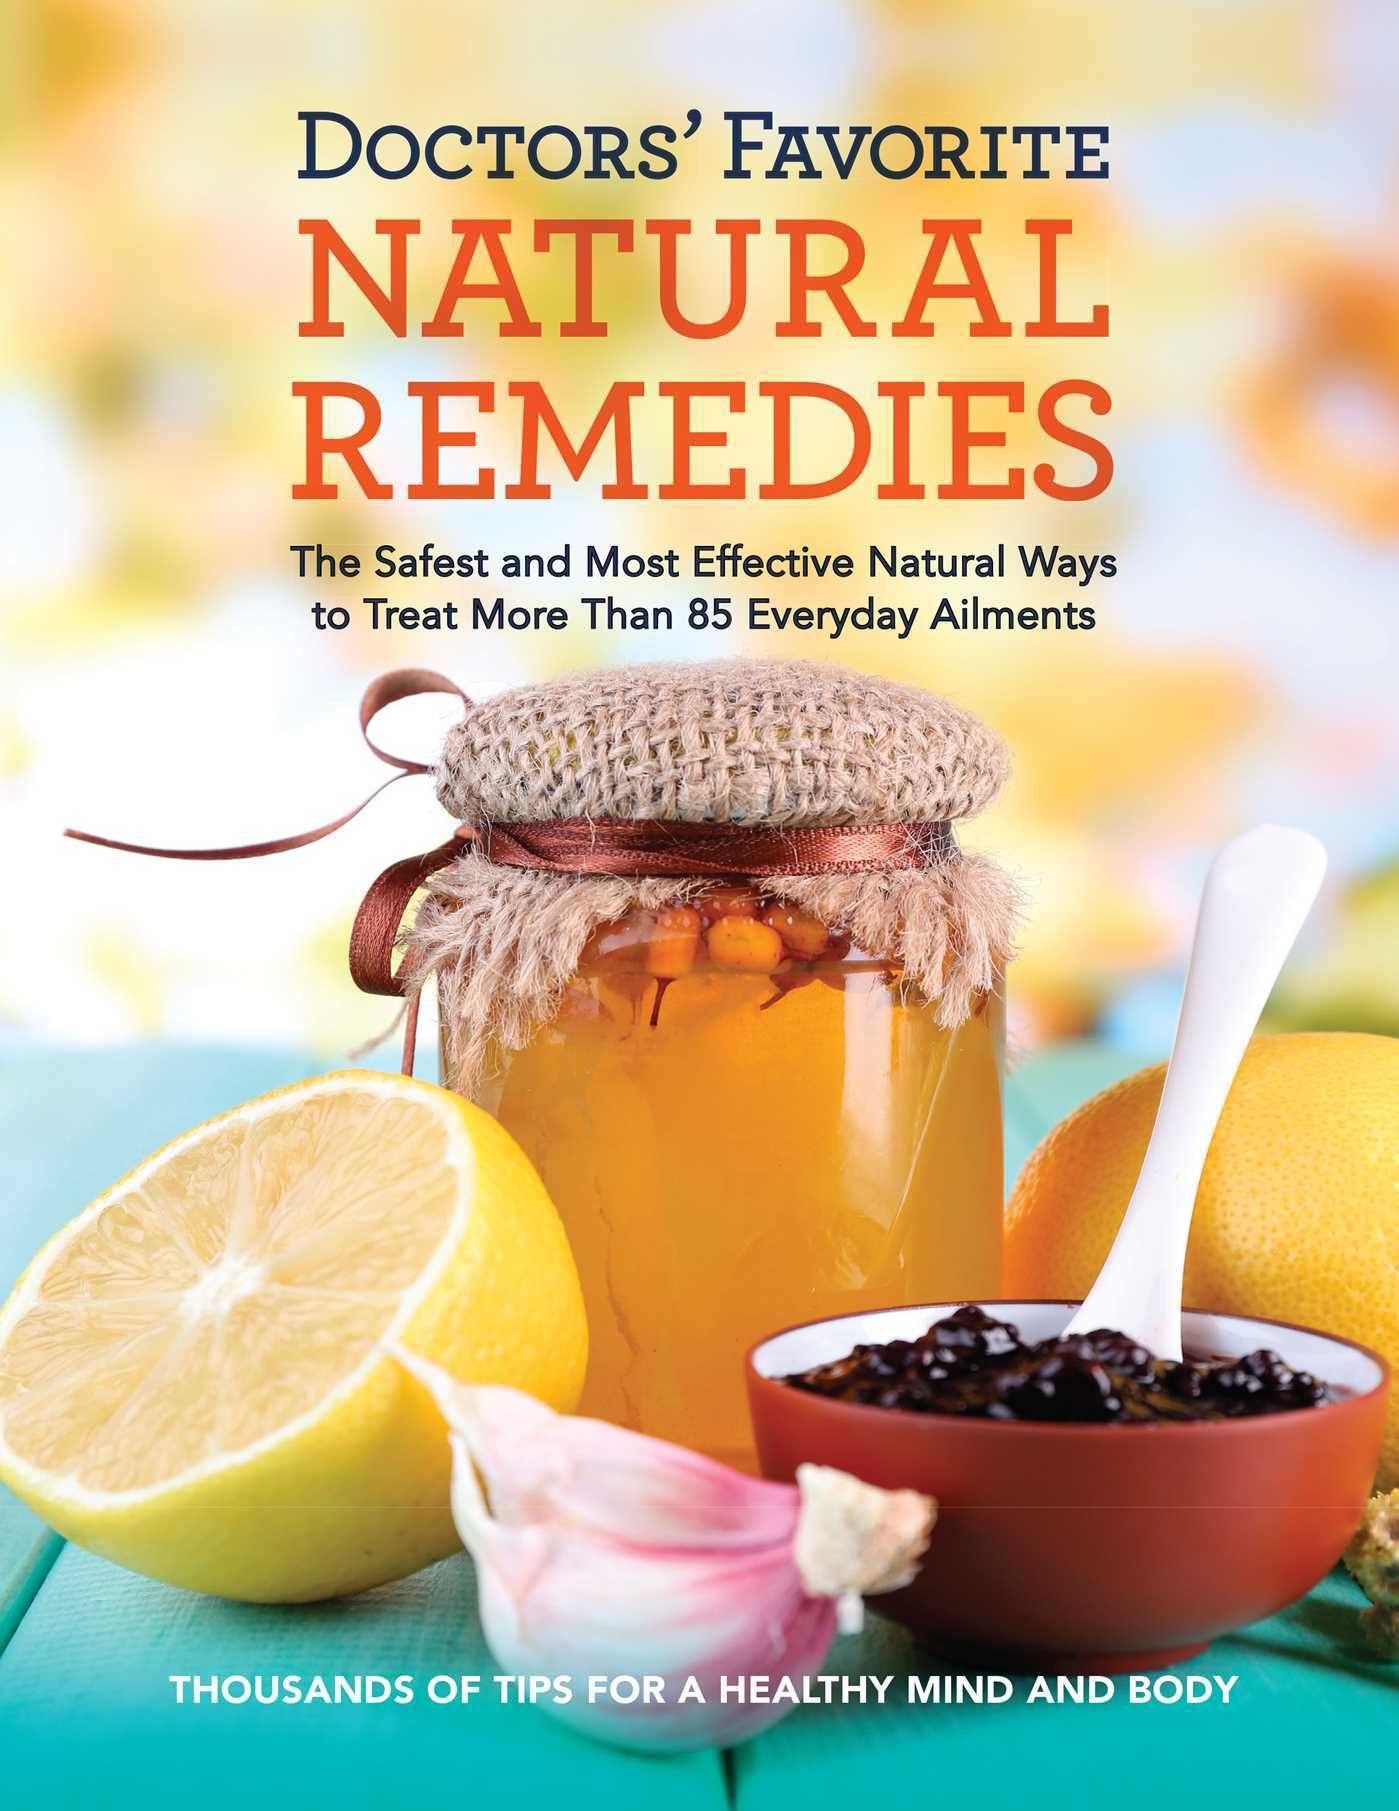 Doctors Favorite Natural Remedies: The Safest and Most Effective Natural Ways to Treat More Than 85 Everyday Ailments  by  Editors at Readers Digest